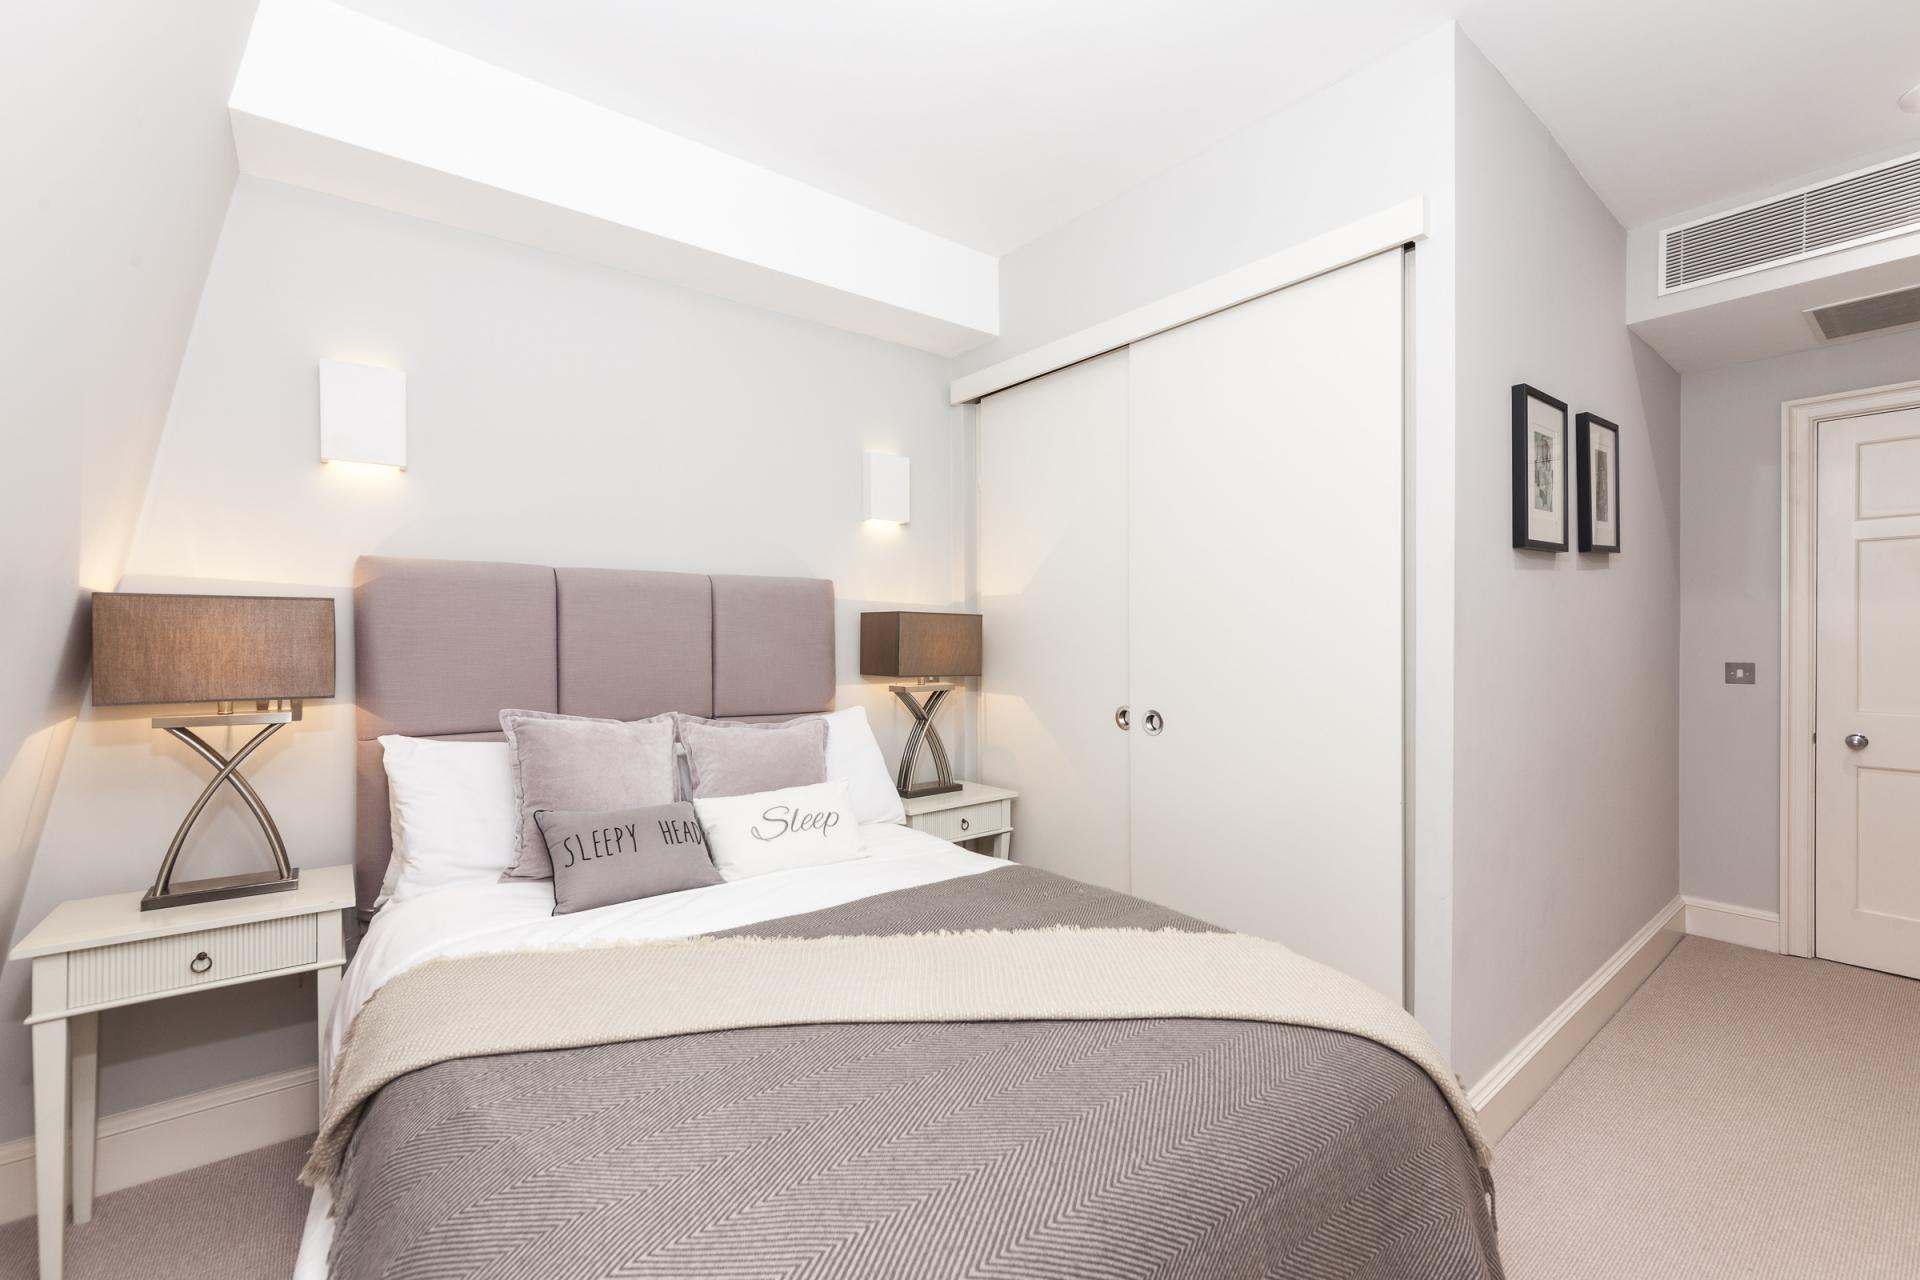 Bedroom at Mayfair Penthouse Apartment, Mayfair, London